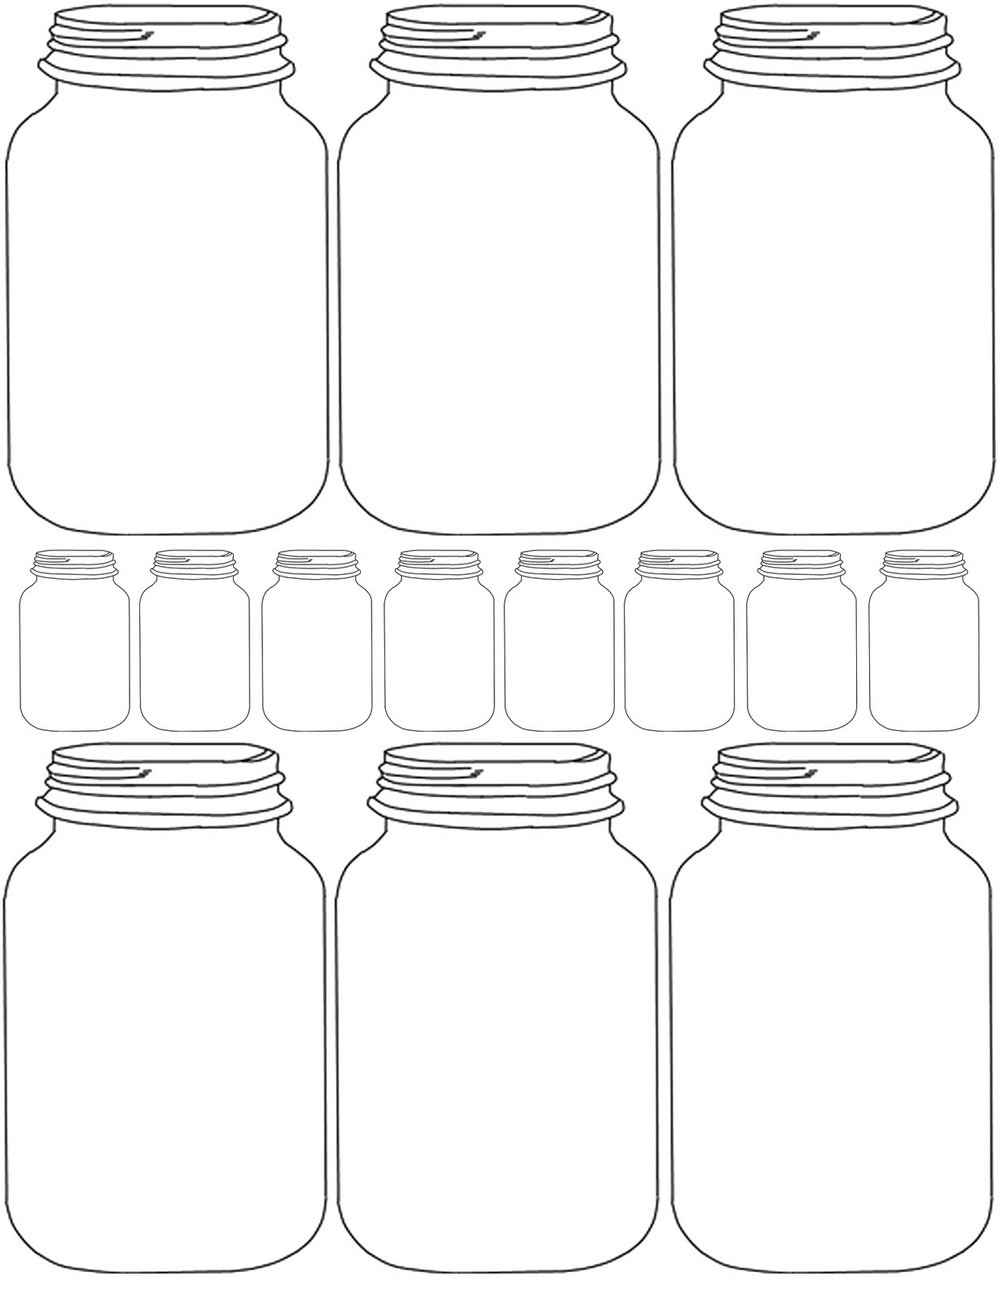 Ball Canning Jar Label Templates